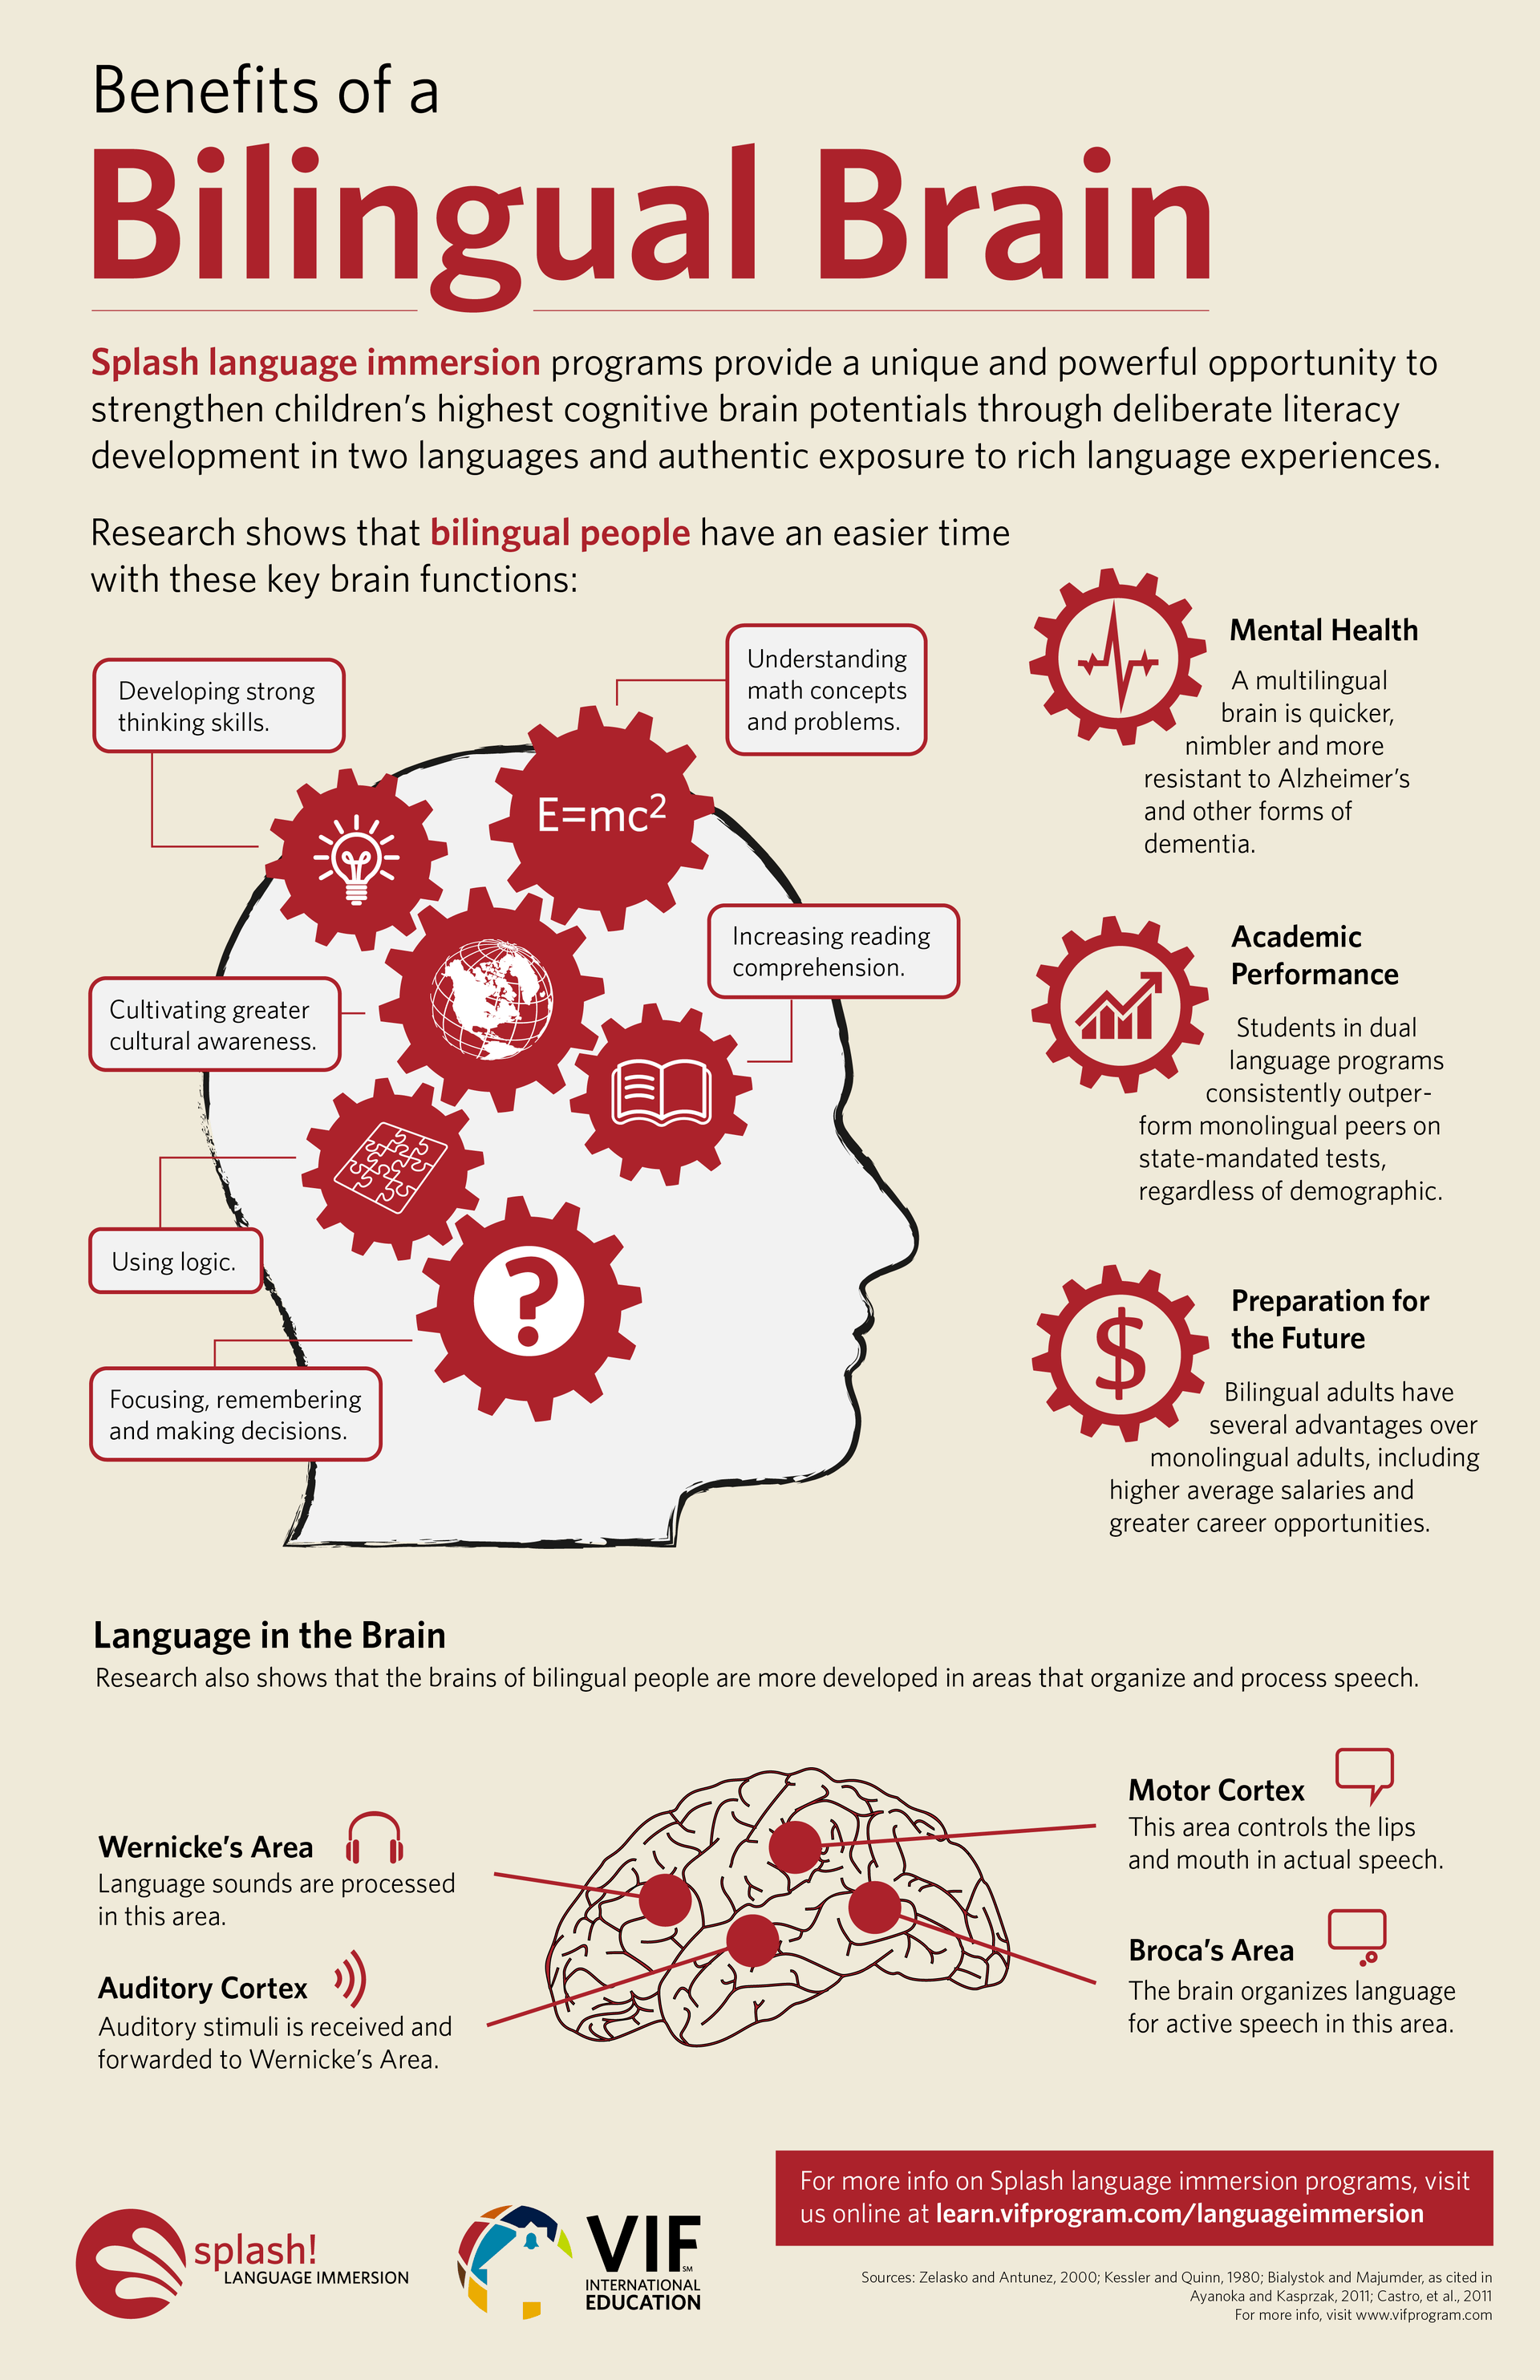 Benefits of a Bilingual Brain Infographic